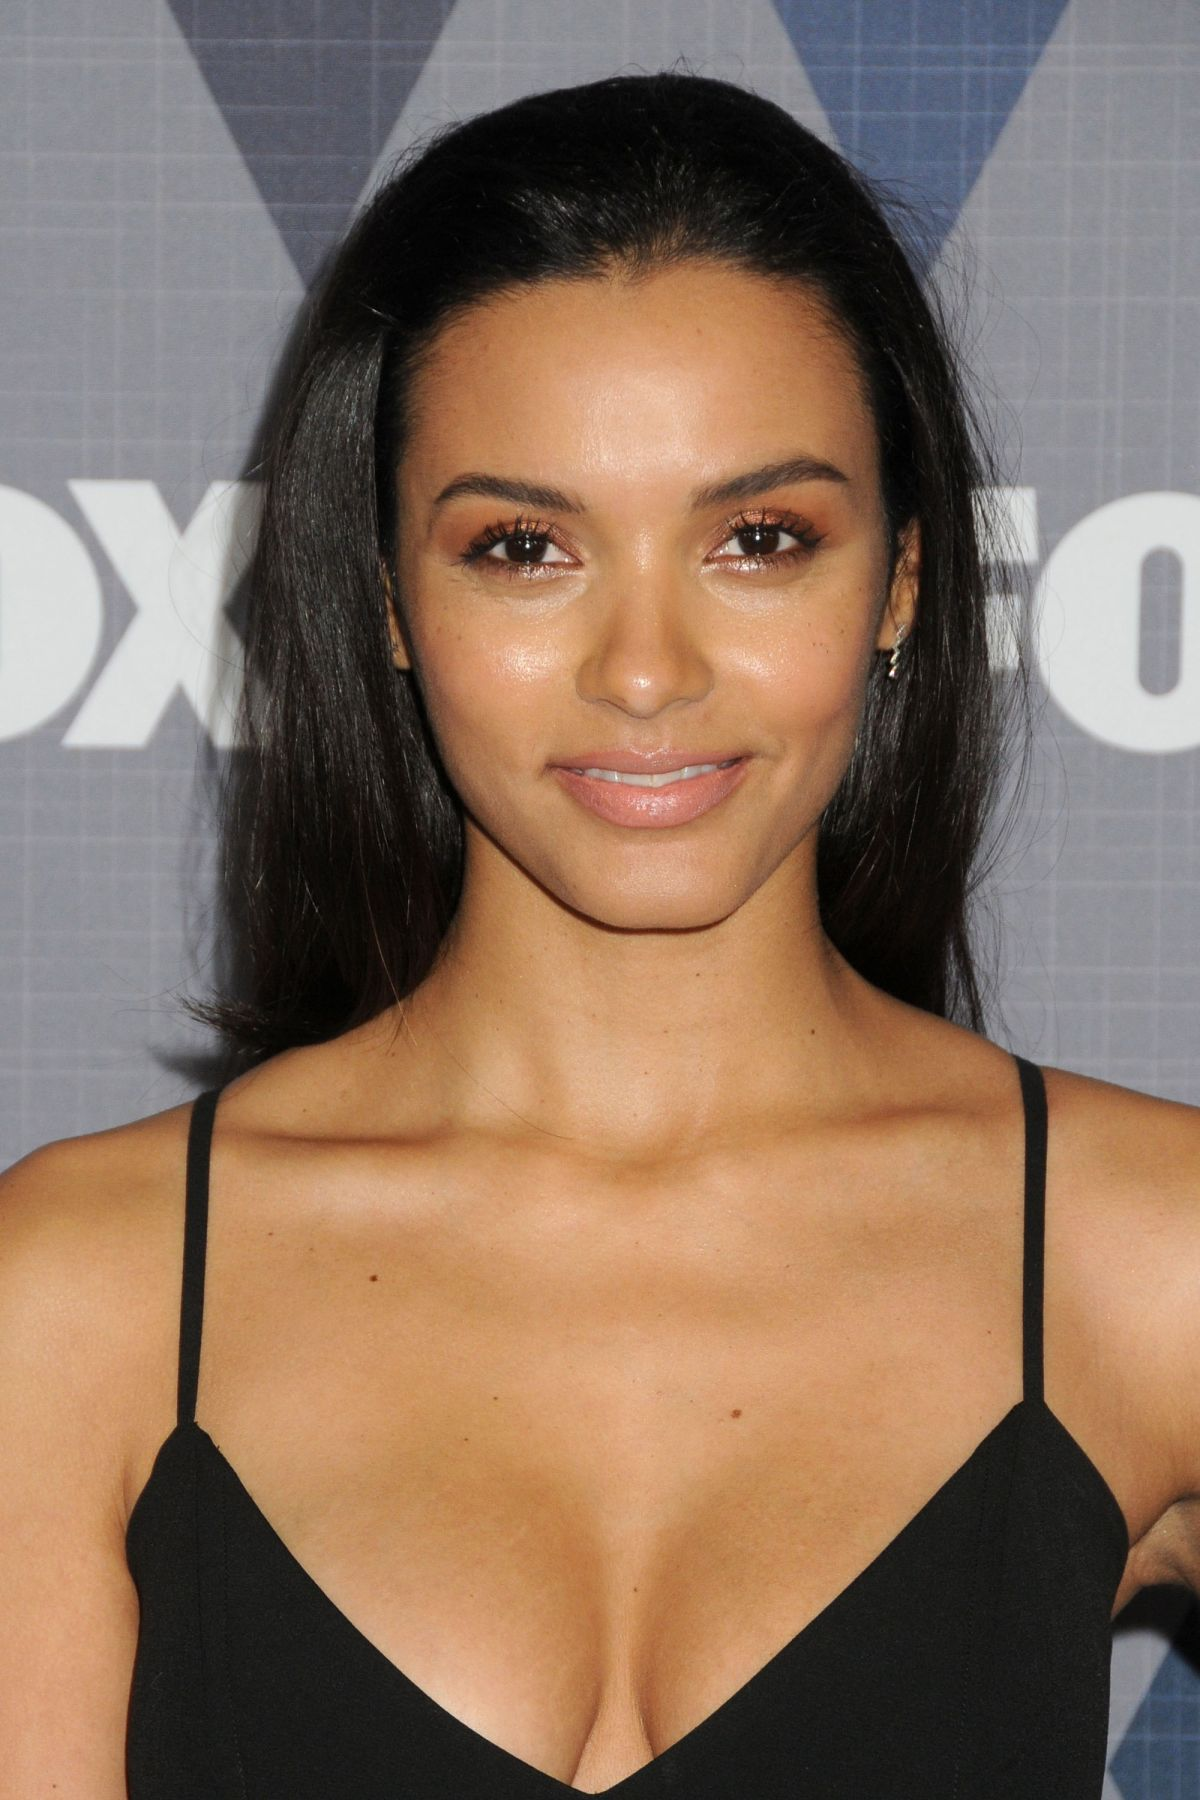 JESSICA LUCAS at Fox Winter TCA 2016 All-star Party in Pasadena 01/15/2016